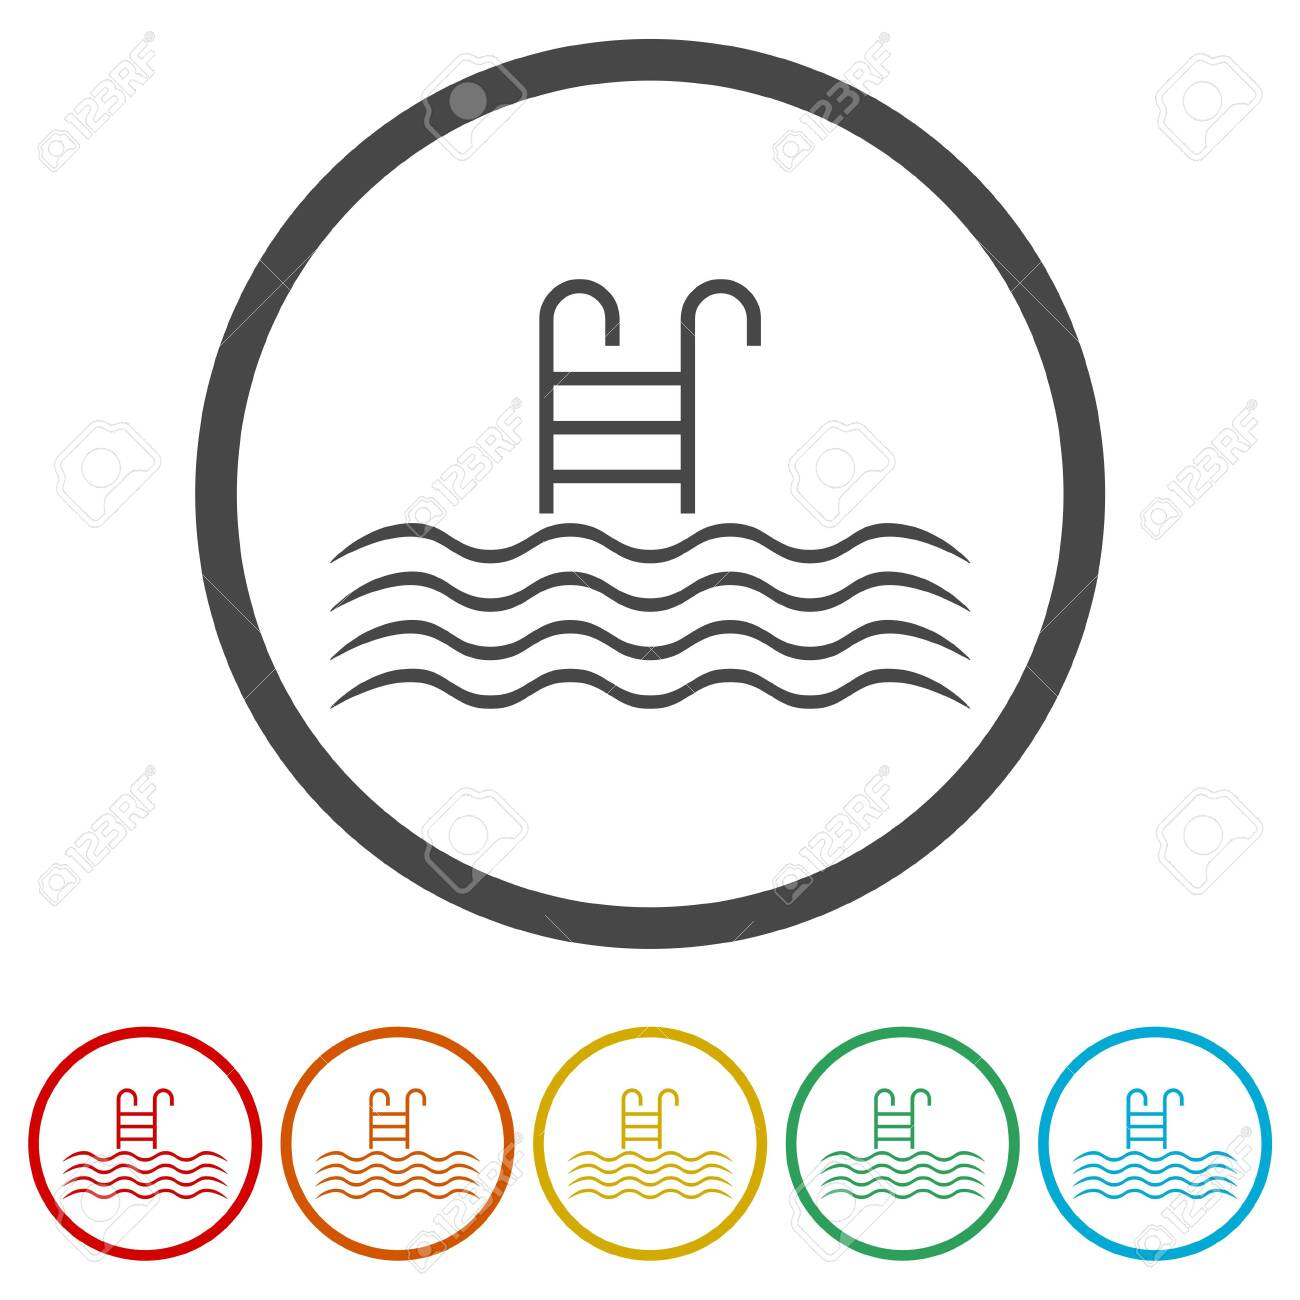 pool vector icon, swimming pool with ladder icon, 6 colors included royalty  free cliparts, vectors, and stock illustration. image 119450408.  123rf